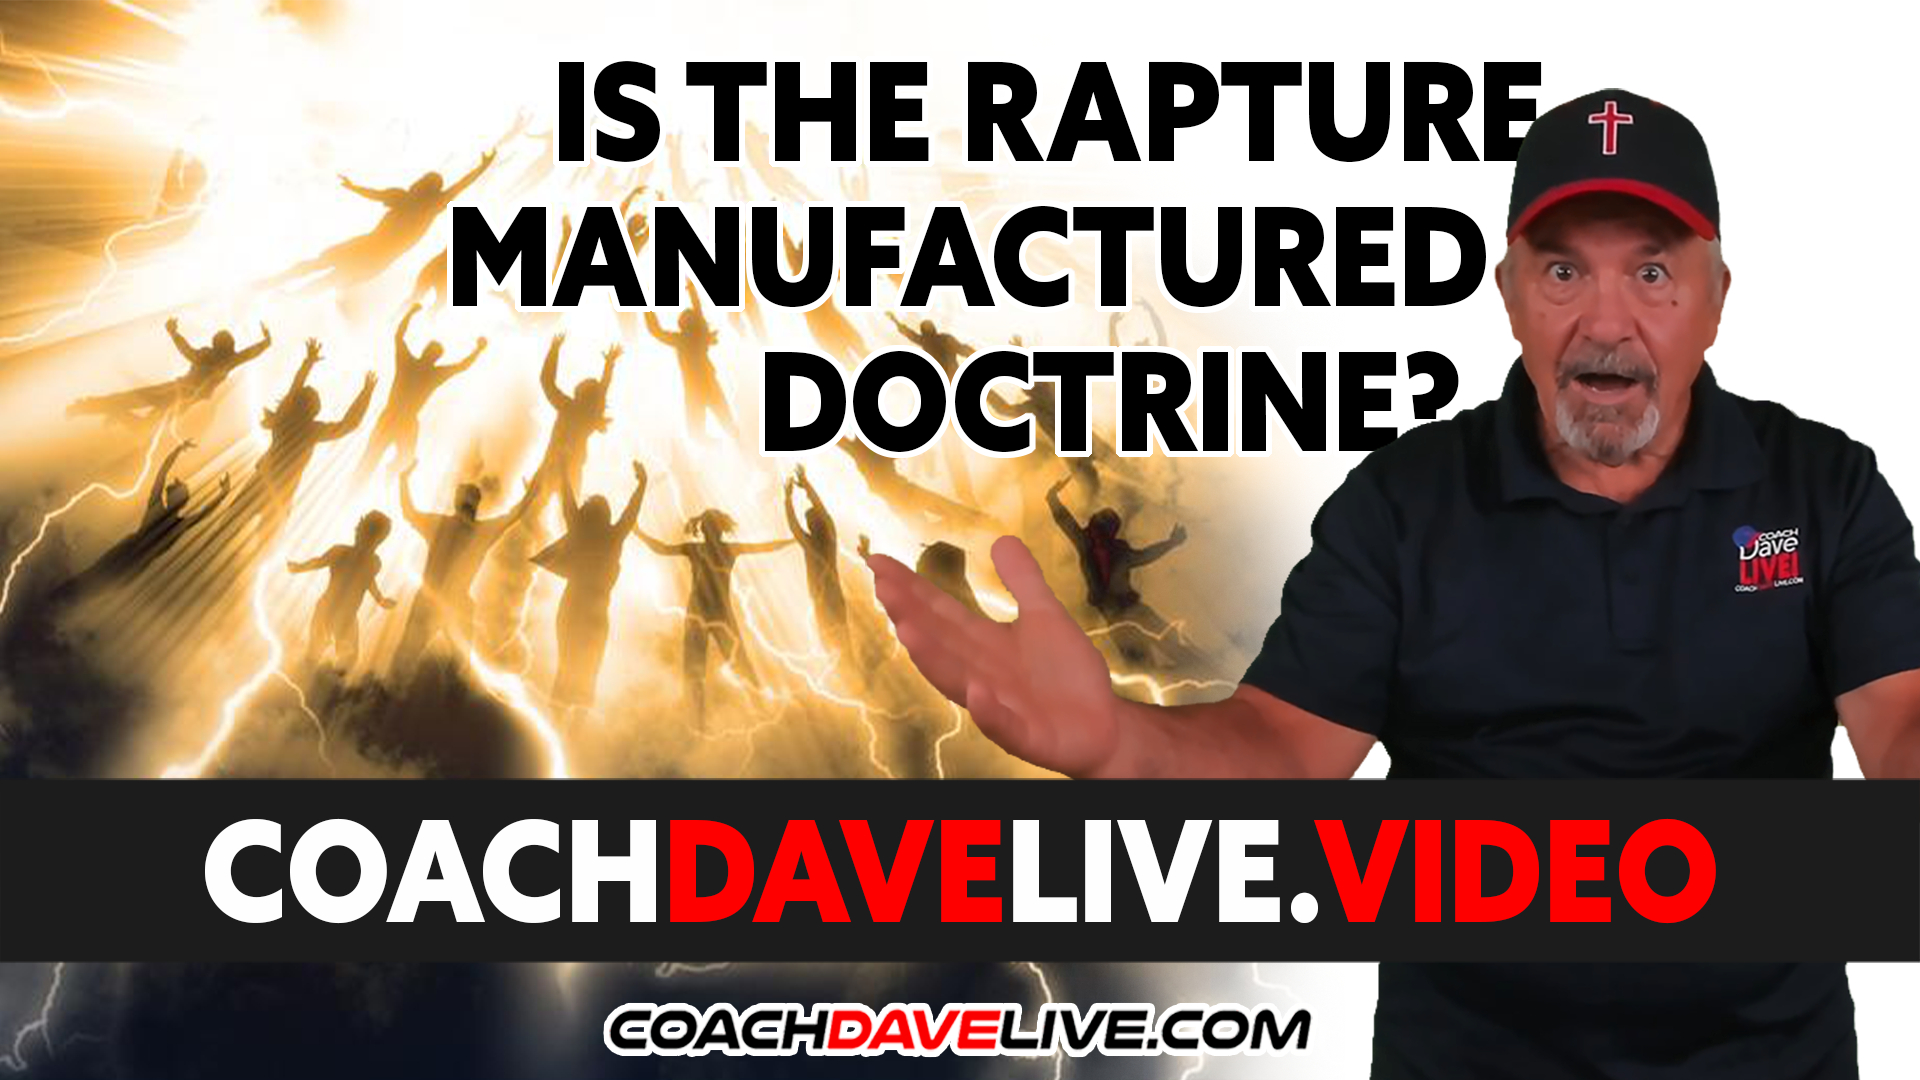 Coach Dave LIVE | 9-7-2021 | IS THE RAPTURE MANUFACTURED DOCTRINE?